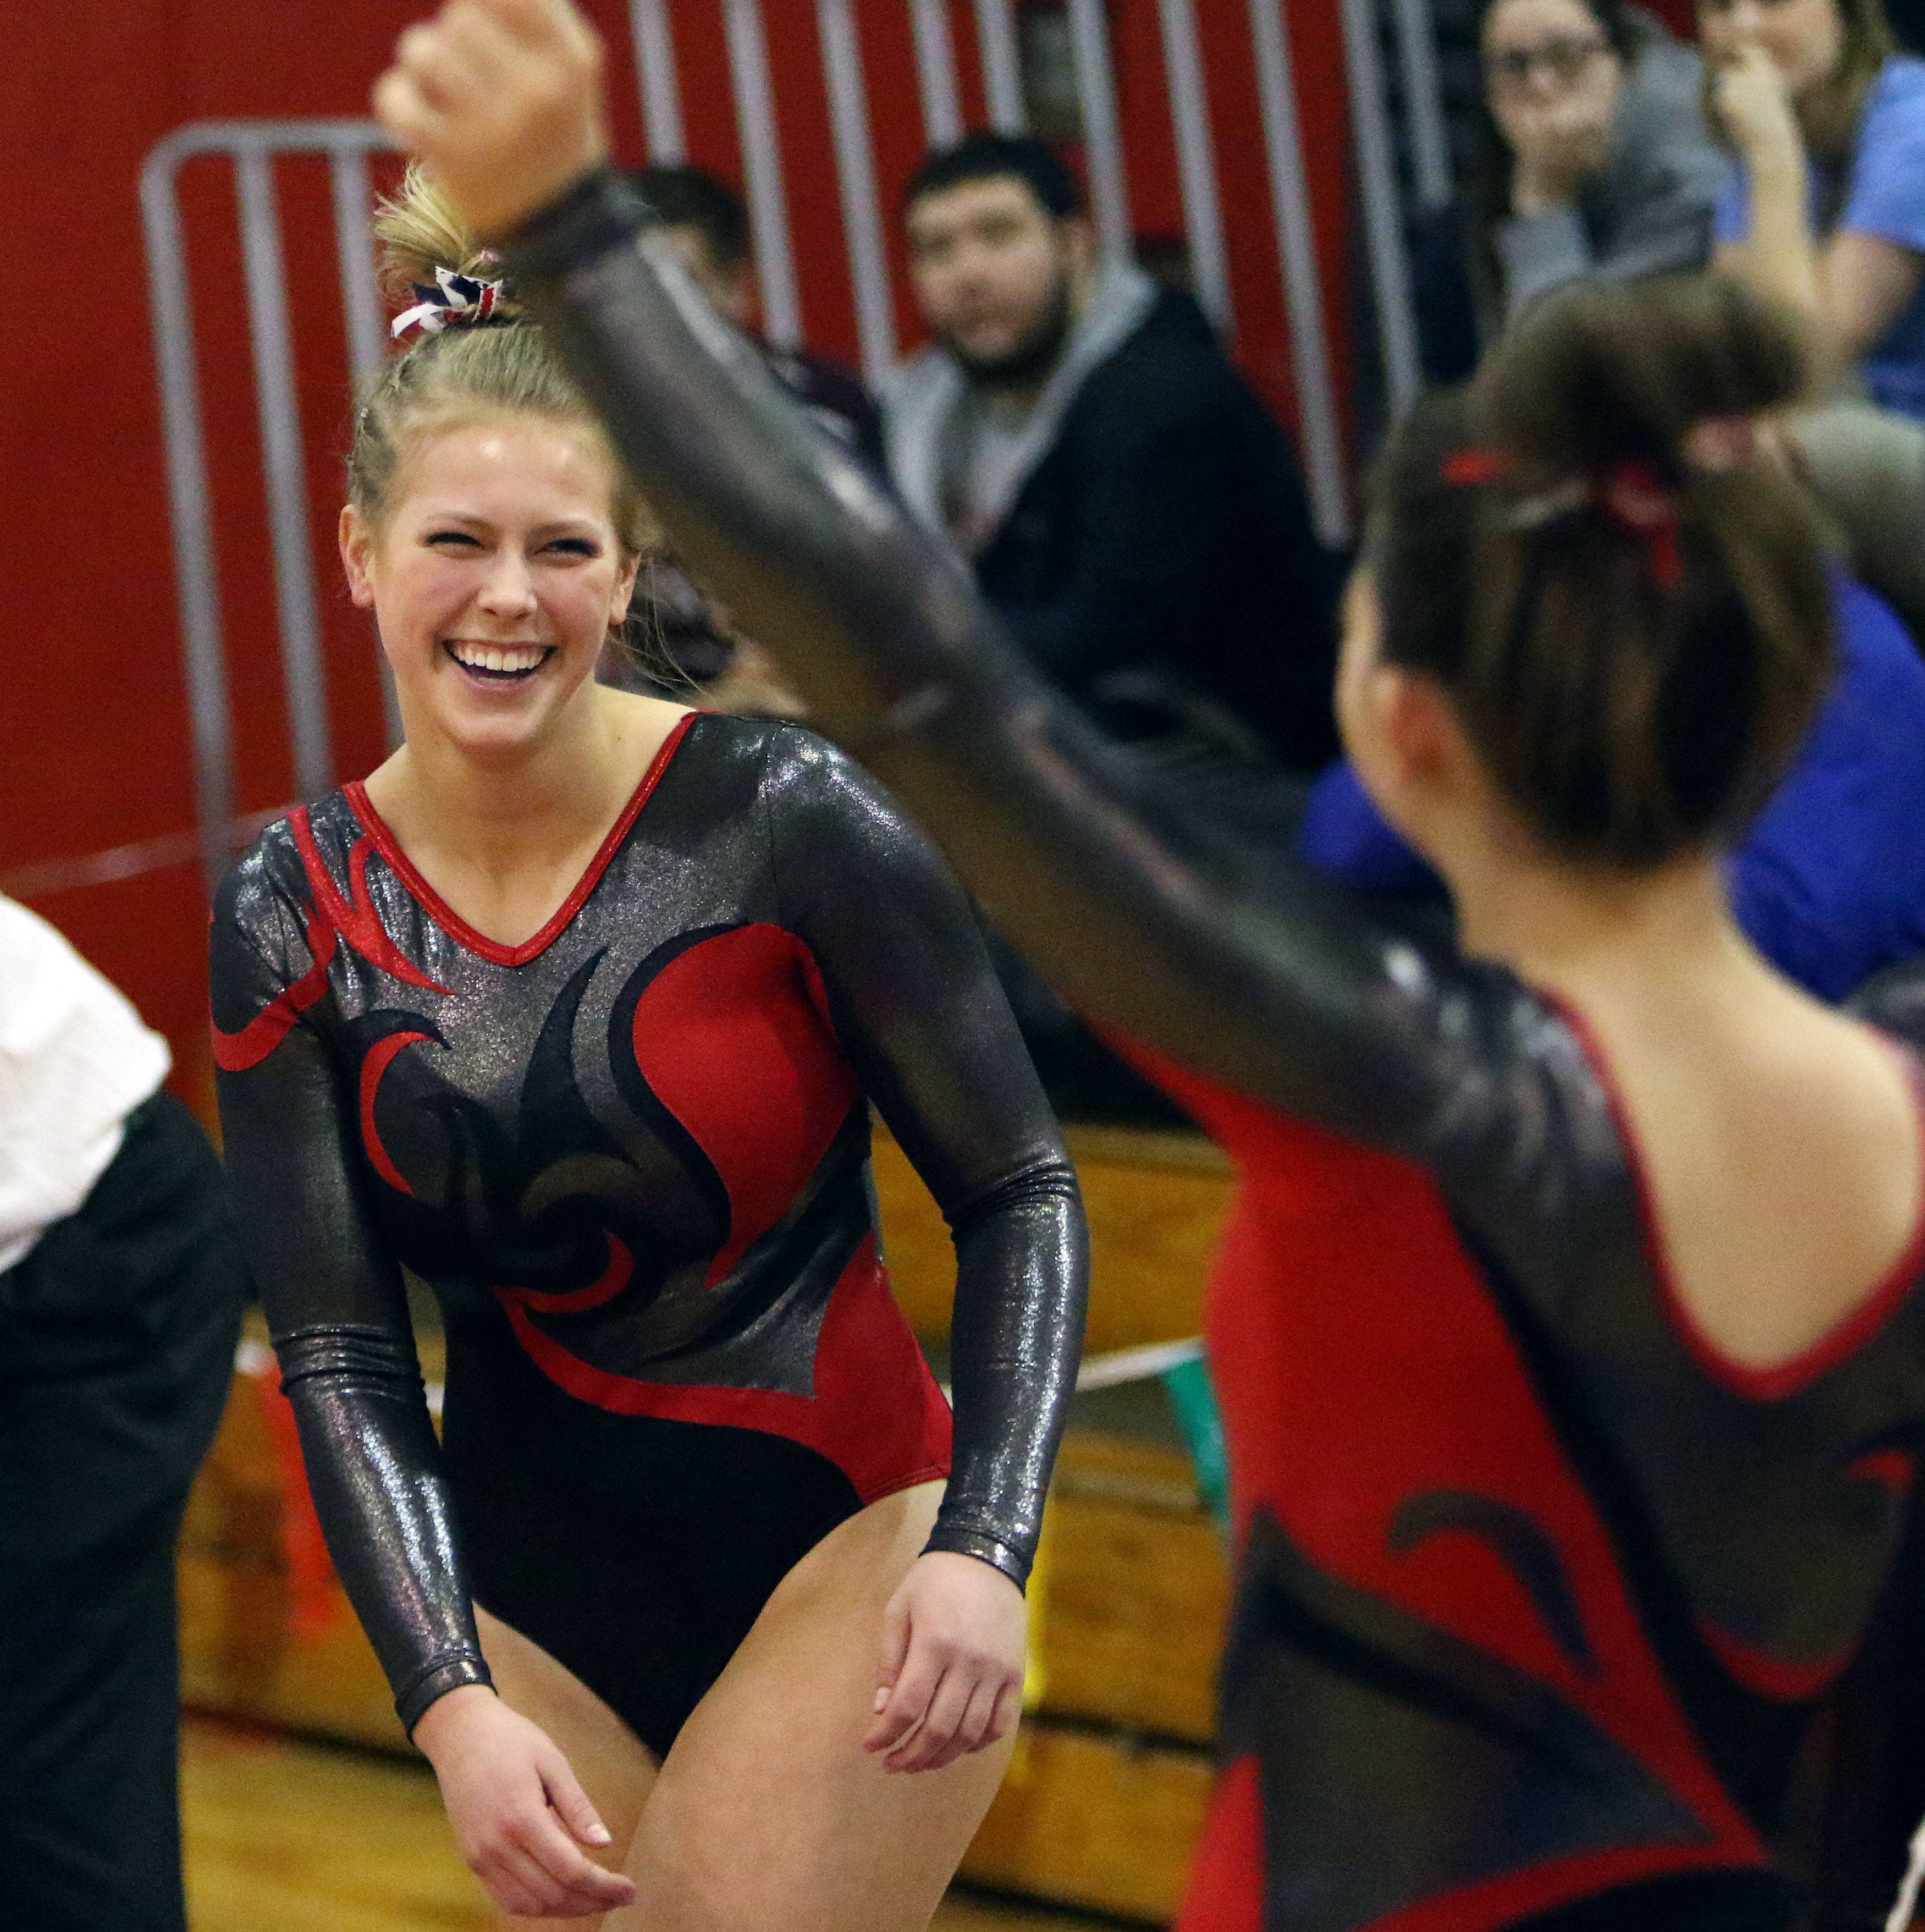 Mundelein's Meagan Kehr, left, celebrates after her vault during Tuesday's girls gymnastics sectional meet at Mundelein.